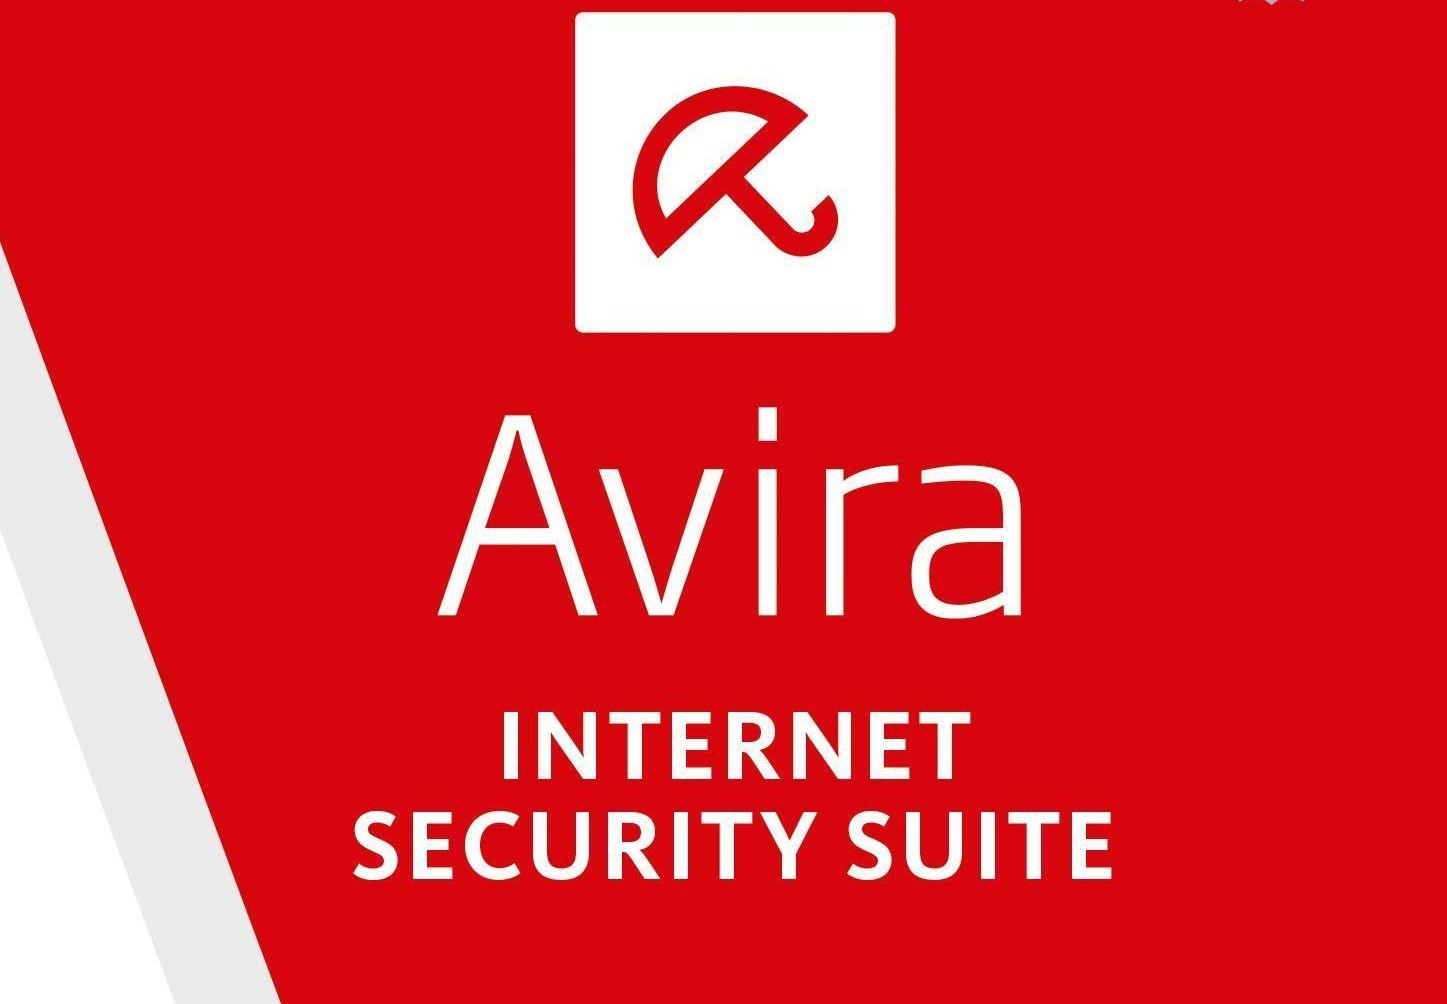 Avira Internet Security Suite 2019 Key (3 Years / 5 Devices)